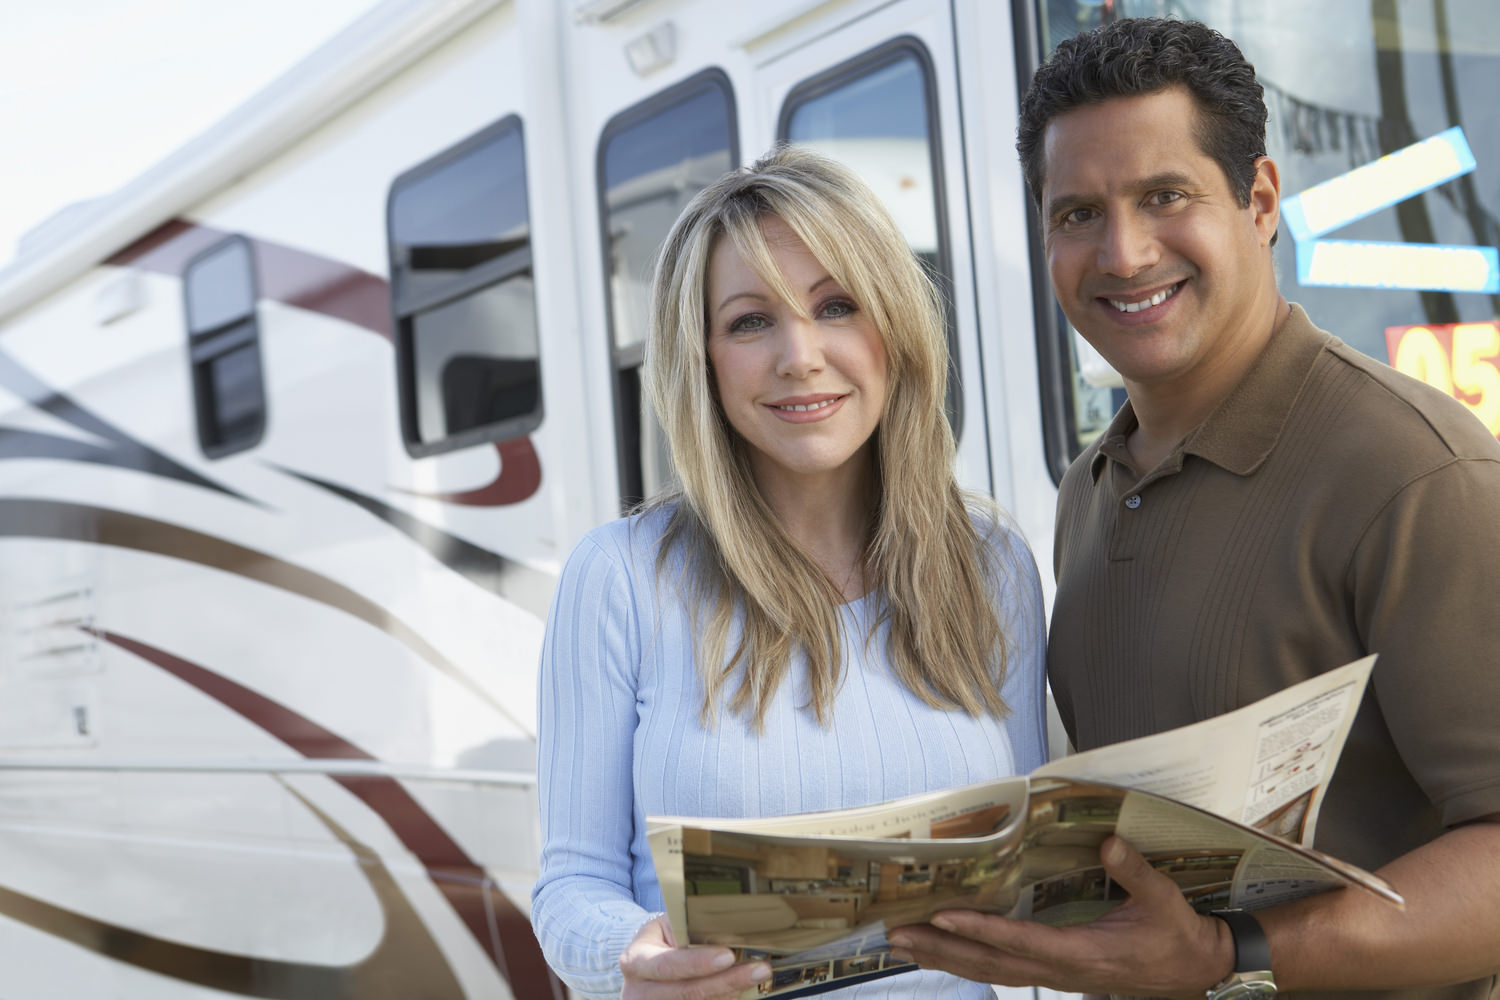 National-RV-Inspection-Services-New-Jersey-New-York-Pennsylvania-Connecticut-motorhome-inspection.jpg